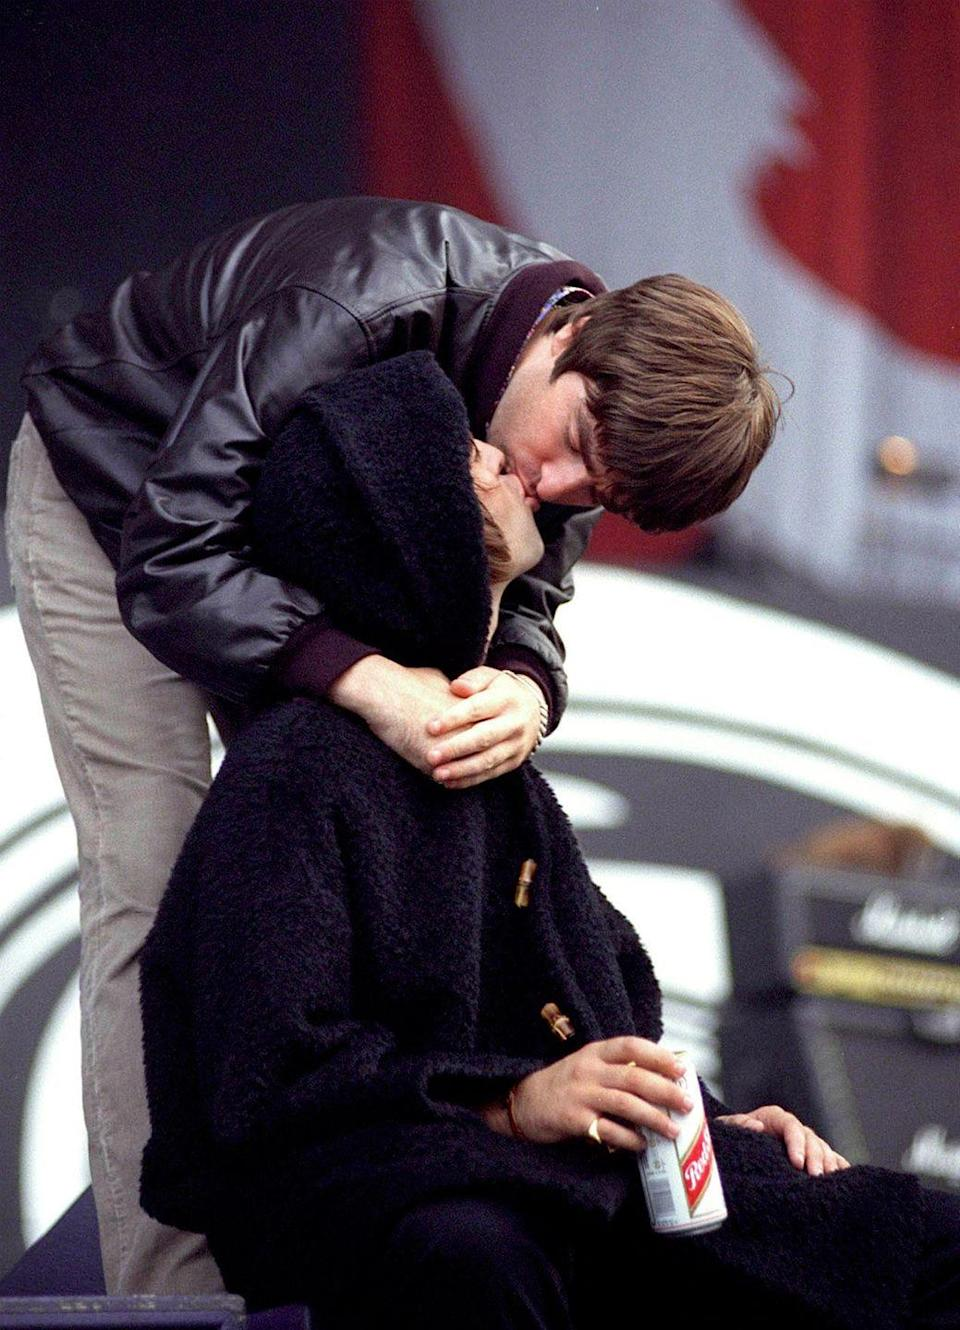 <p>Noel and Liam kissing on stage at Glasgow Green Festival in 2000.</p>